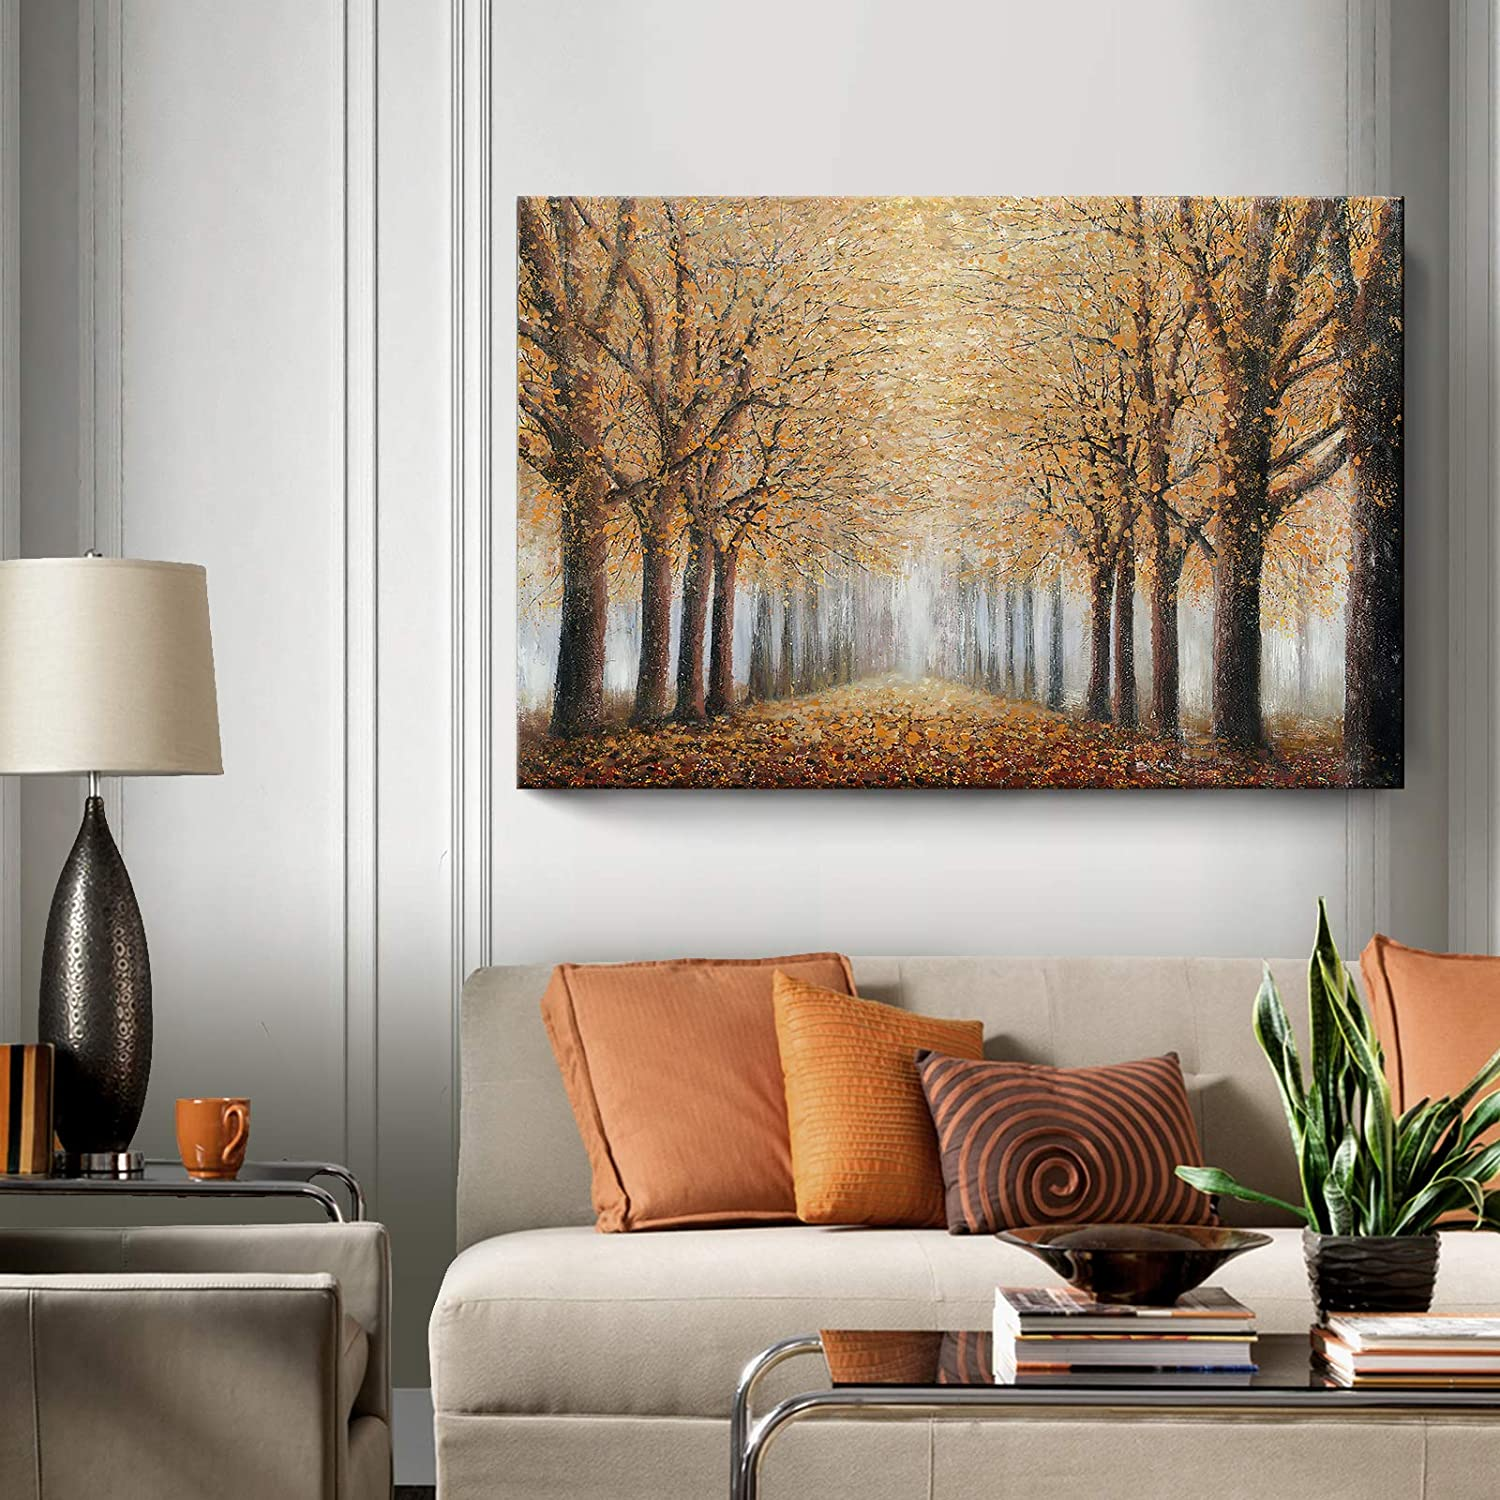 Amazon.com: Large Tree Wall Art for Living Room Hand-Painted Forest Oil Painting Framed Yellow Grove Artwork Autumn Landscape Canvas Print for Living Room Bedroom Home Decorations Wall Decor Large 48